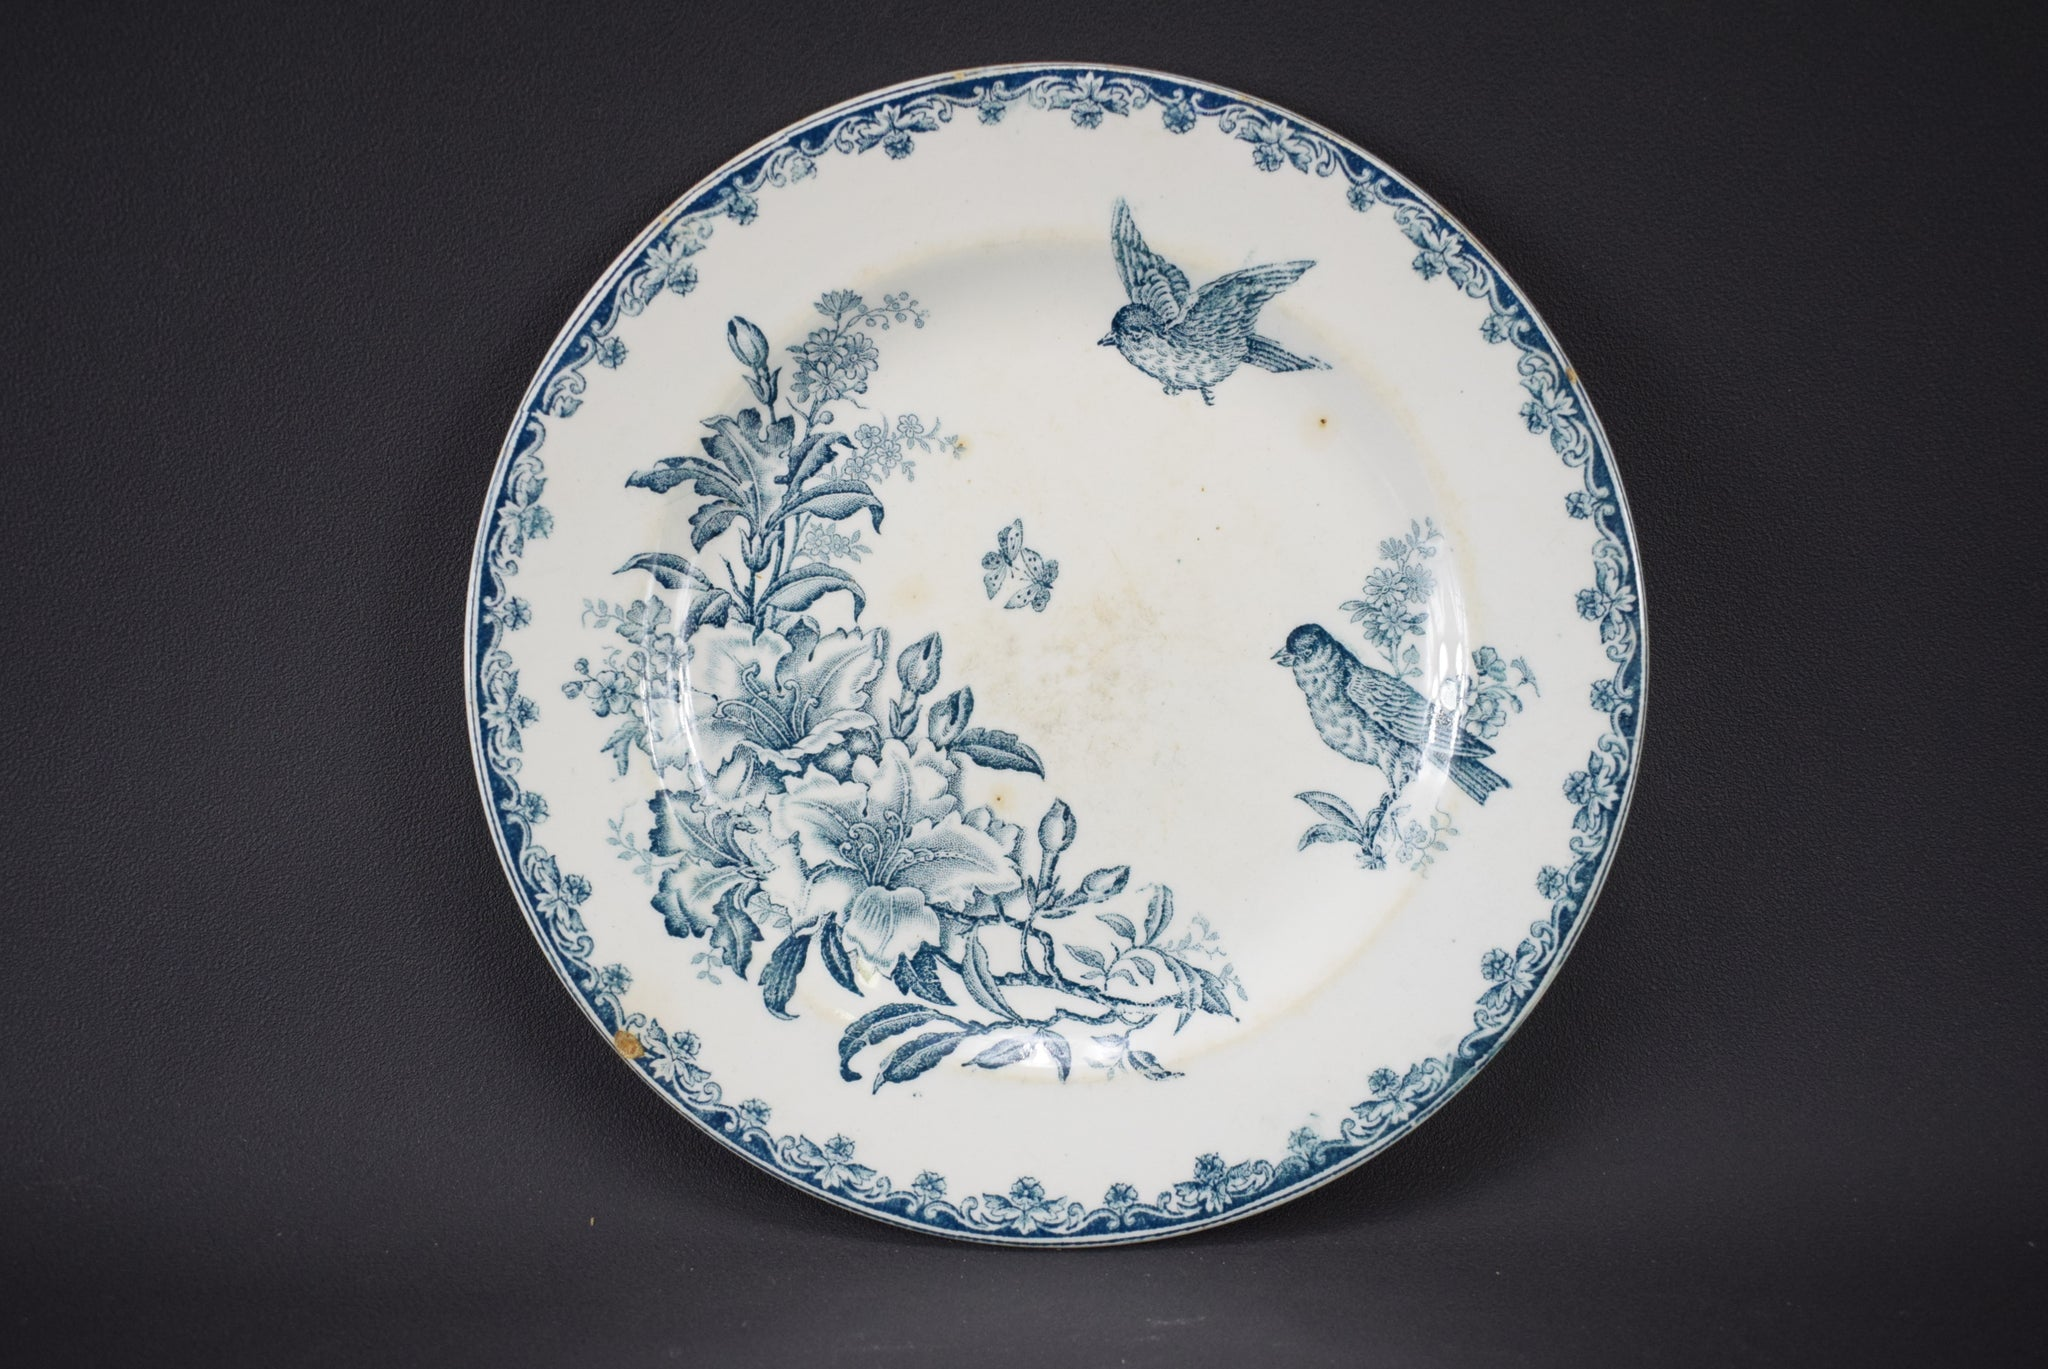 Set of 4 Blue & White Ironstone Bird Plates - Charmantiques